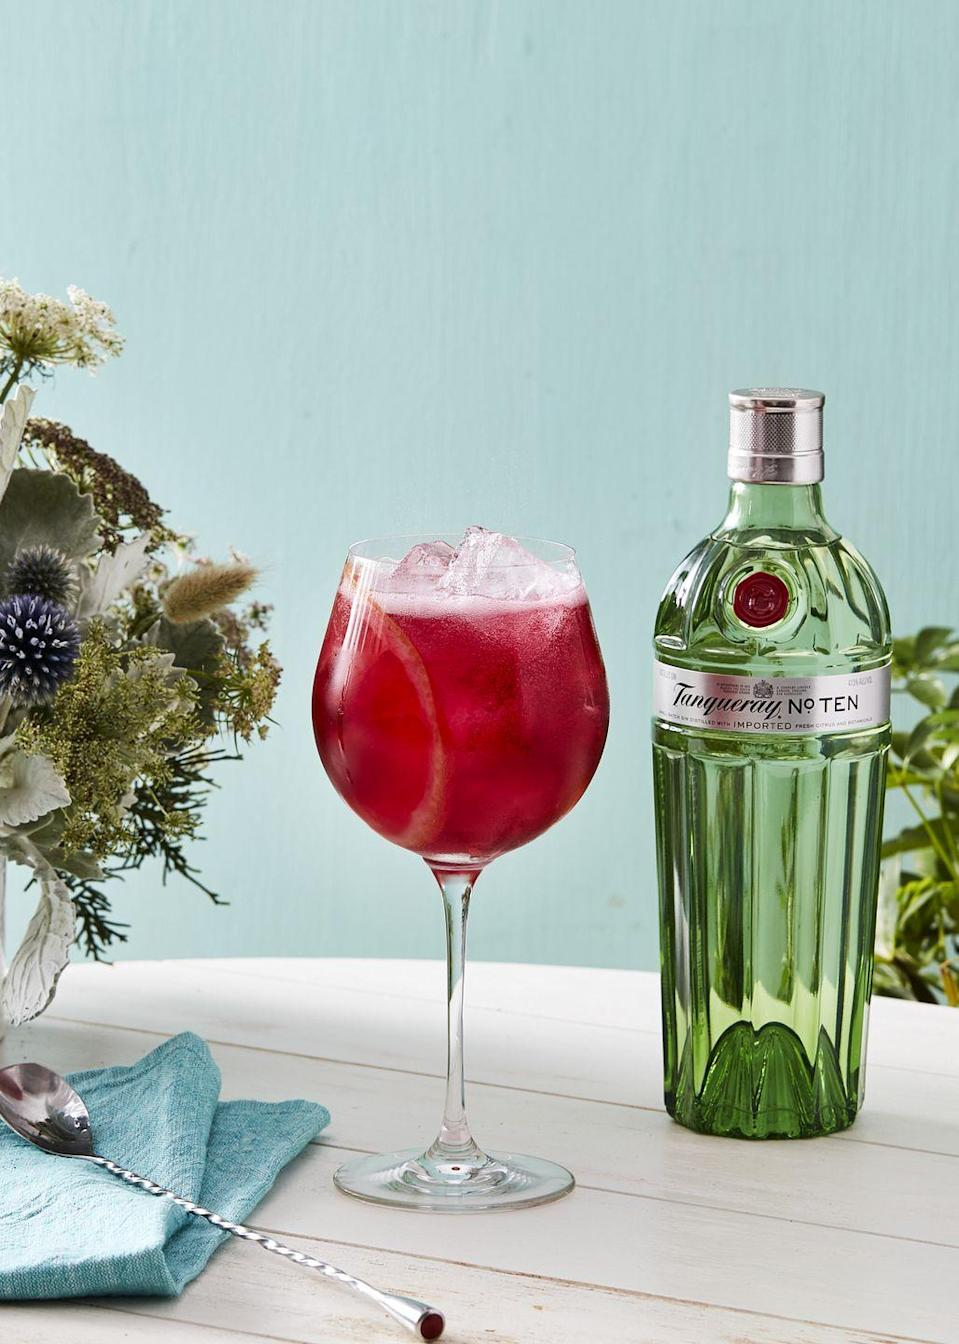 <p>Mixologist Lauren Davis' take on a traditional spritz involves a gorgeous and vibrant hibiscus syrup to liven up cocktail hour. Plus, we always love an excuse to use a bold and botanical-forward gin.</p><p><strong> Ingredients:</strong></p><p>1 1/2 ounces Tanqueray No.Ten (or other London dry gin)</p><p>3/4 ounces hibiscus syrup (recipe below)</p><p>club soda</p><p>grapefruit wheel, for garnish</p><p><strong>Directions:</strong></p><ol><li>Make the hibiscus syrup by steeping 1-2 bags of hibiscus tea in a cup of hot water. Remove the tea bags after five minutes and add one cup of sugar. Stir until the sugar is dissolved.</li><li>Add gin and hibiscus syrup to a copa or wine glass. Add ice. Top with club soda and garnish with a grapefruit wheel.</li></ol>